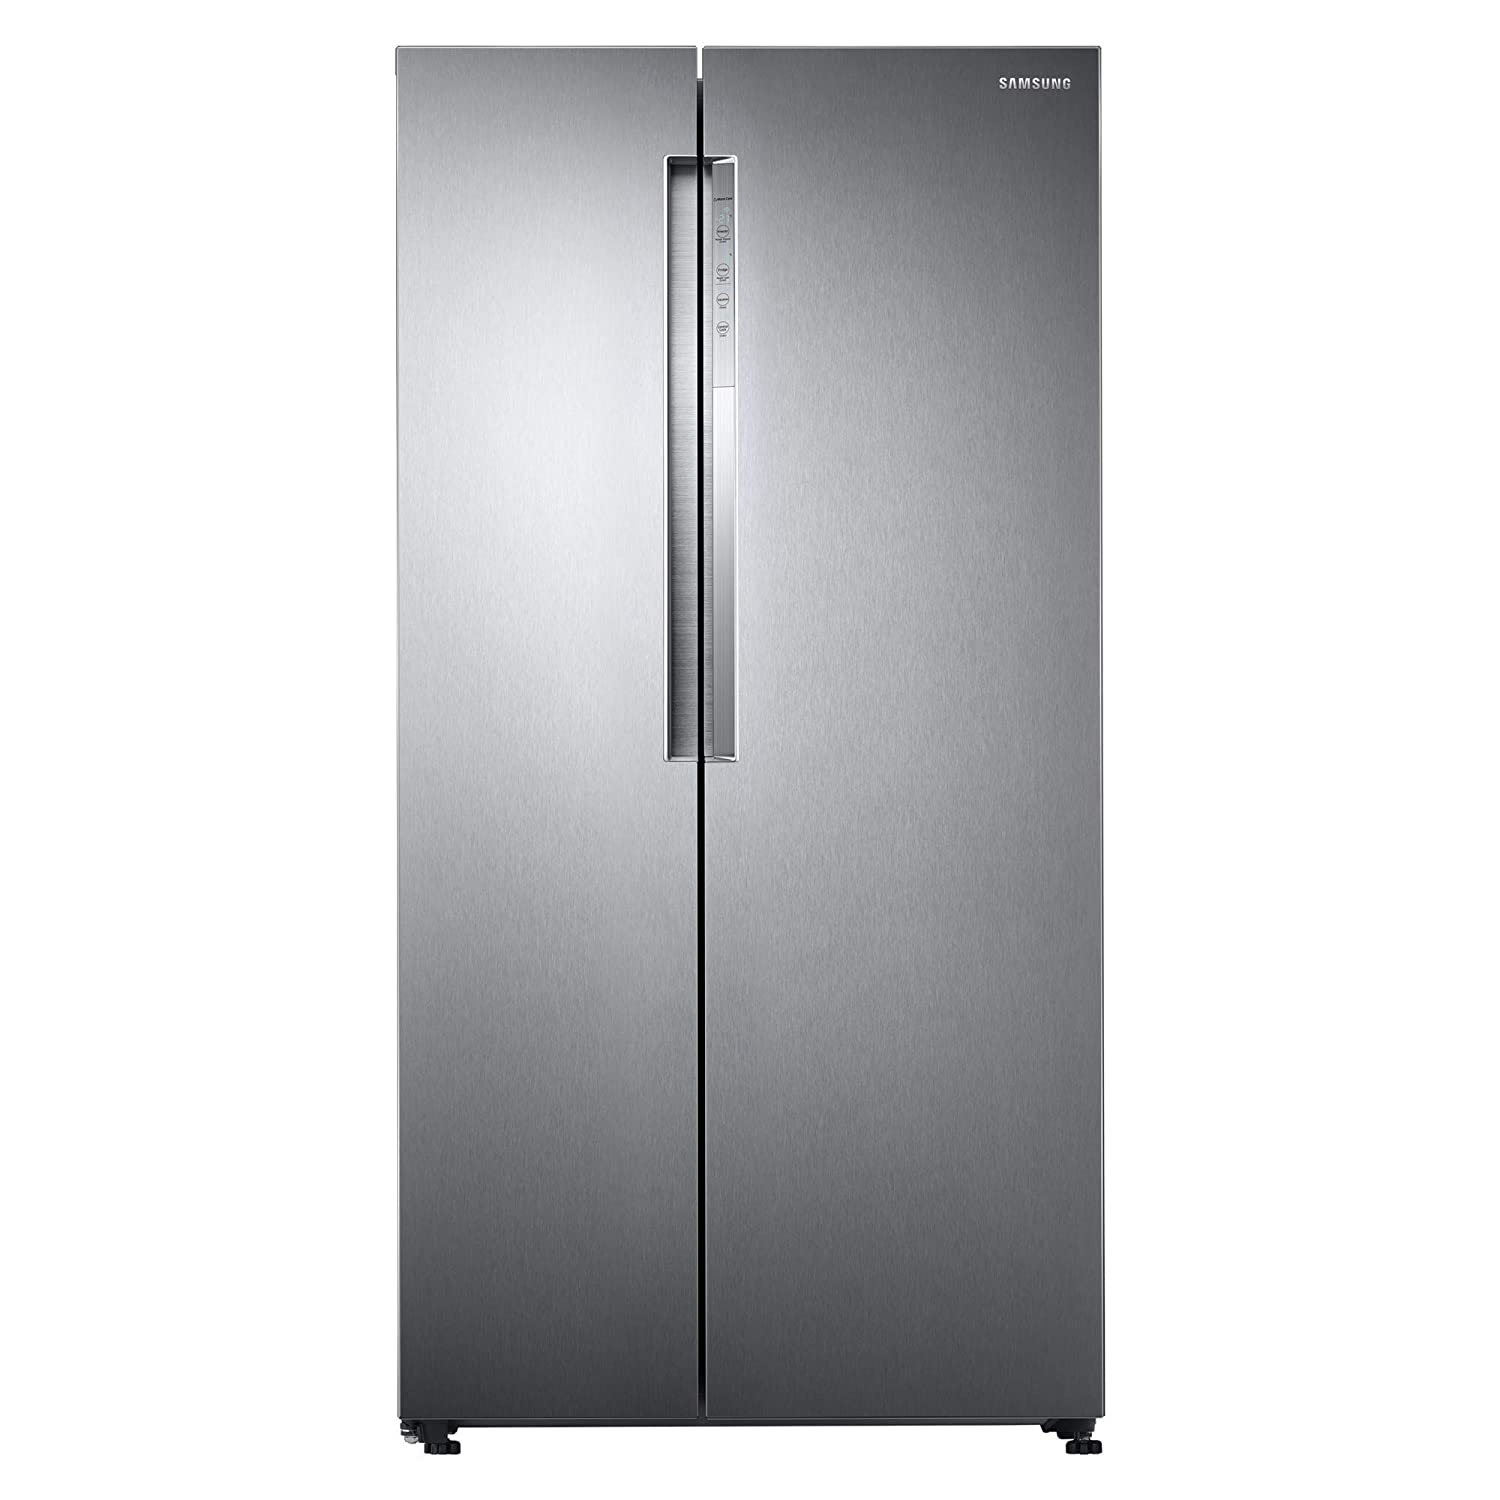 Samsung RS62K6198SL nevera puerta lado a lado Independiente Acero inoxidable 620 L A++ - Frigorífico side-by-side (Independiente, Acero inoxidable, ...